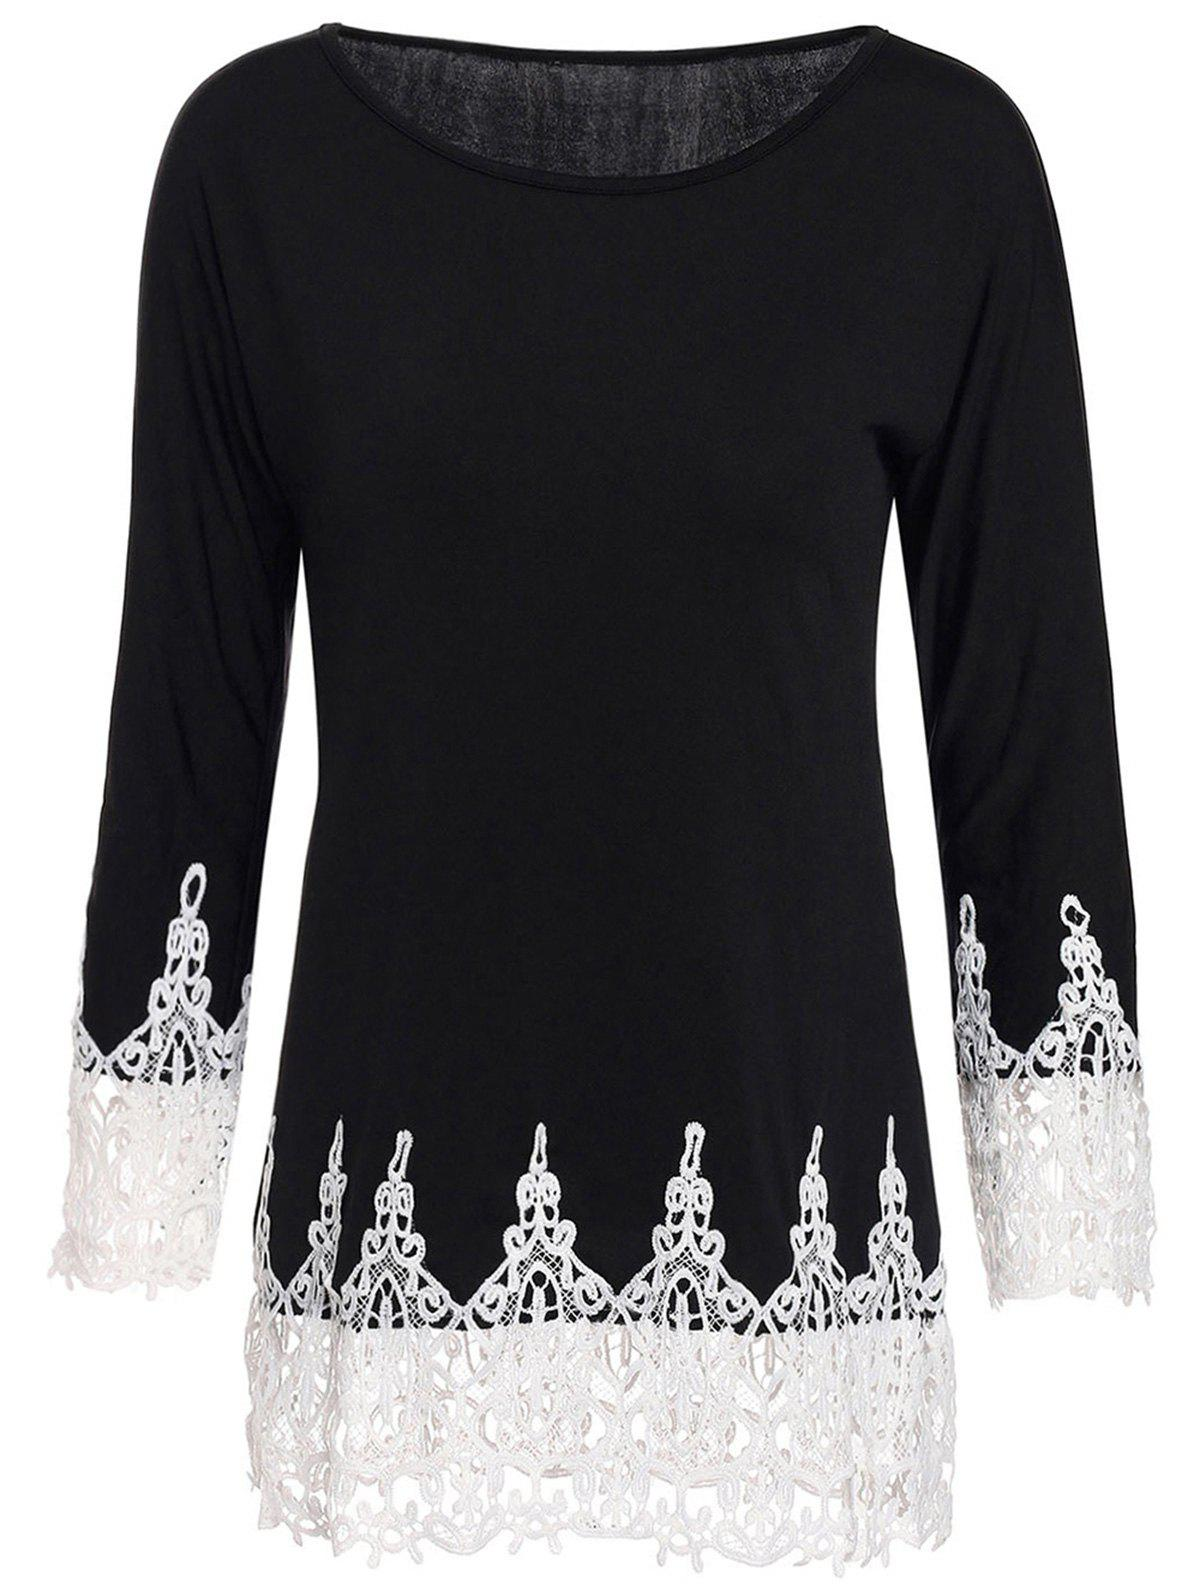 Stylish Women's Scoop Neck 3/4 Sleeve Lace Splicing T-Shirt - BLACK S